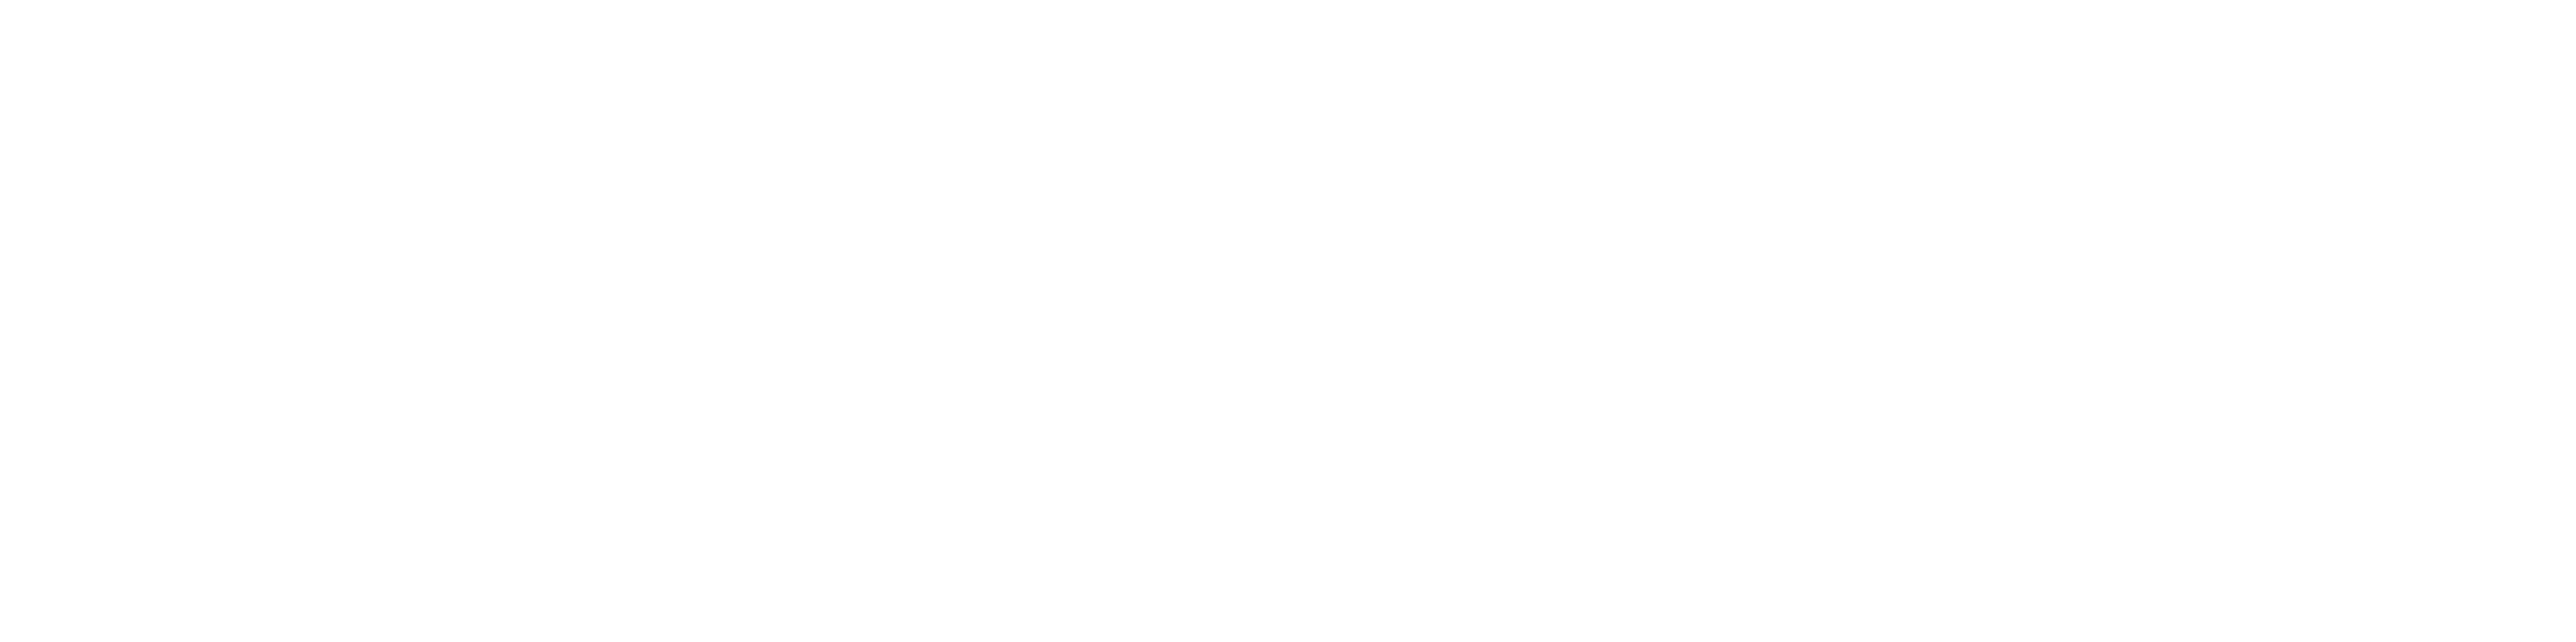 The Office of Jay S. Marks Law Firm